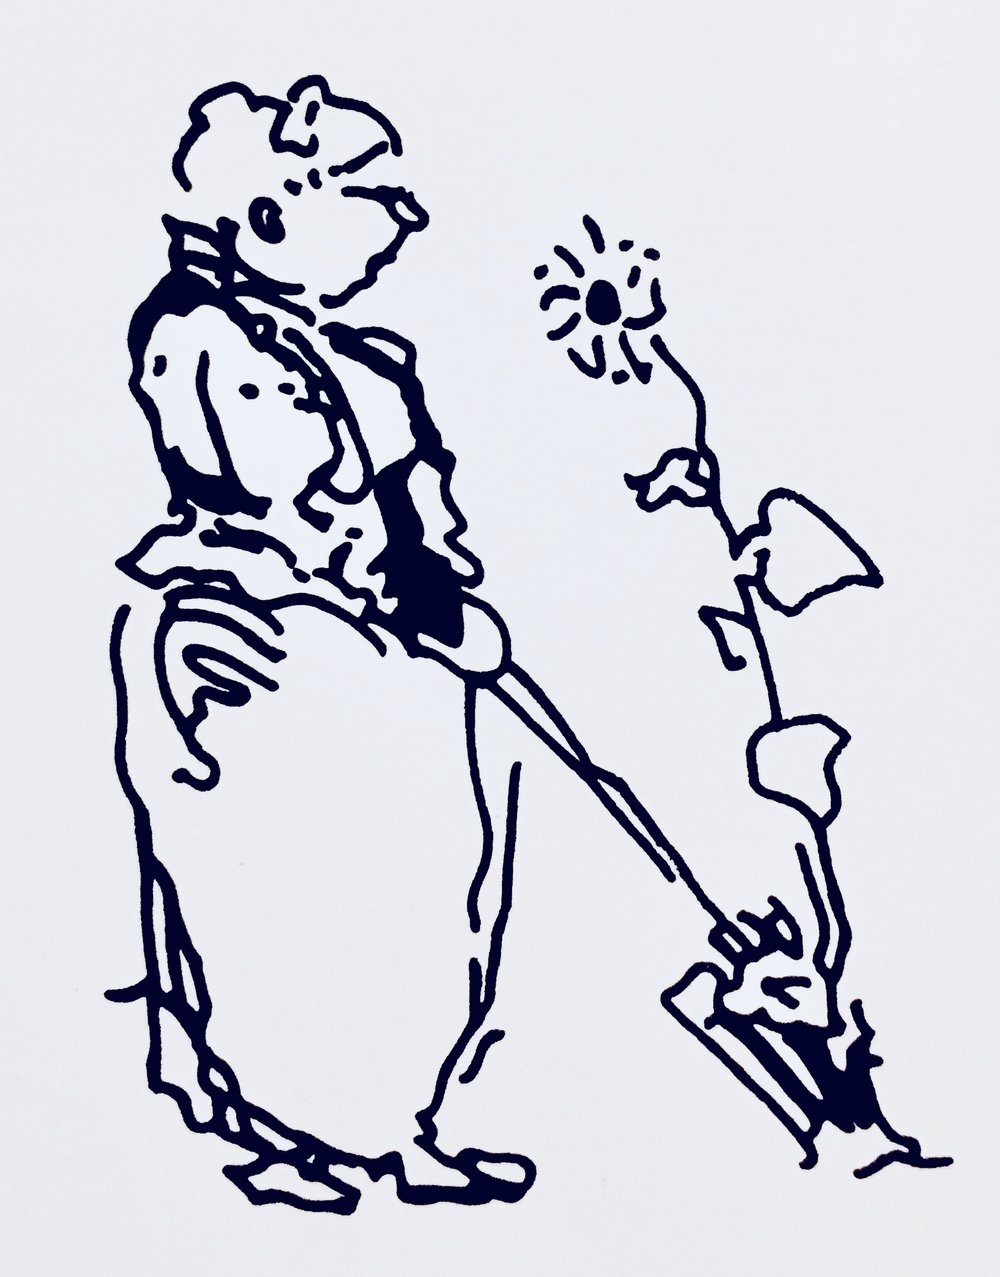 Edwin Lutyens sketch of his friend and collaborator (Redrawn version - original ©RIBA Collection)